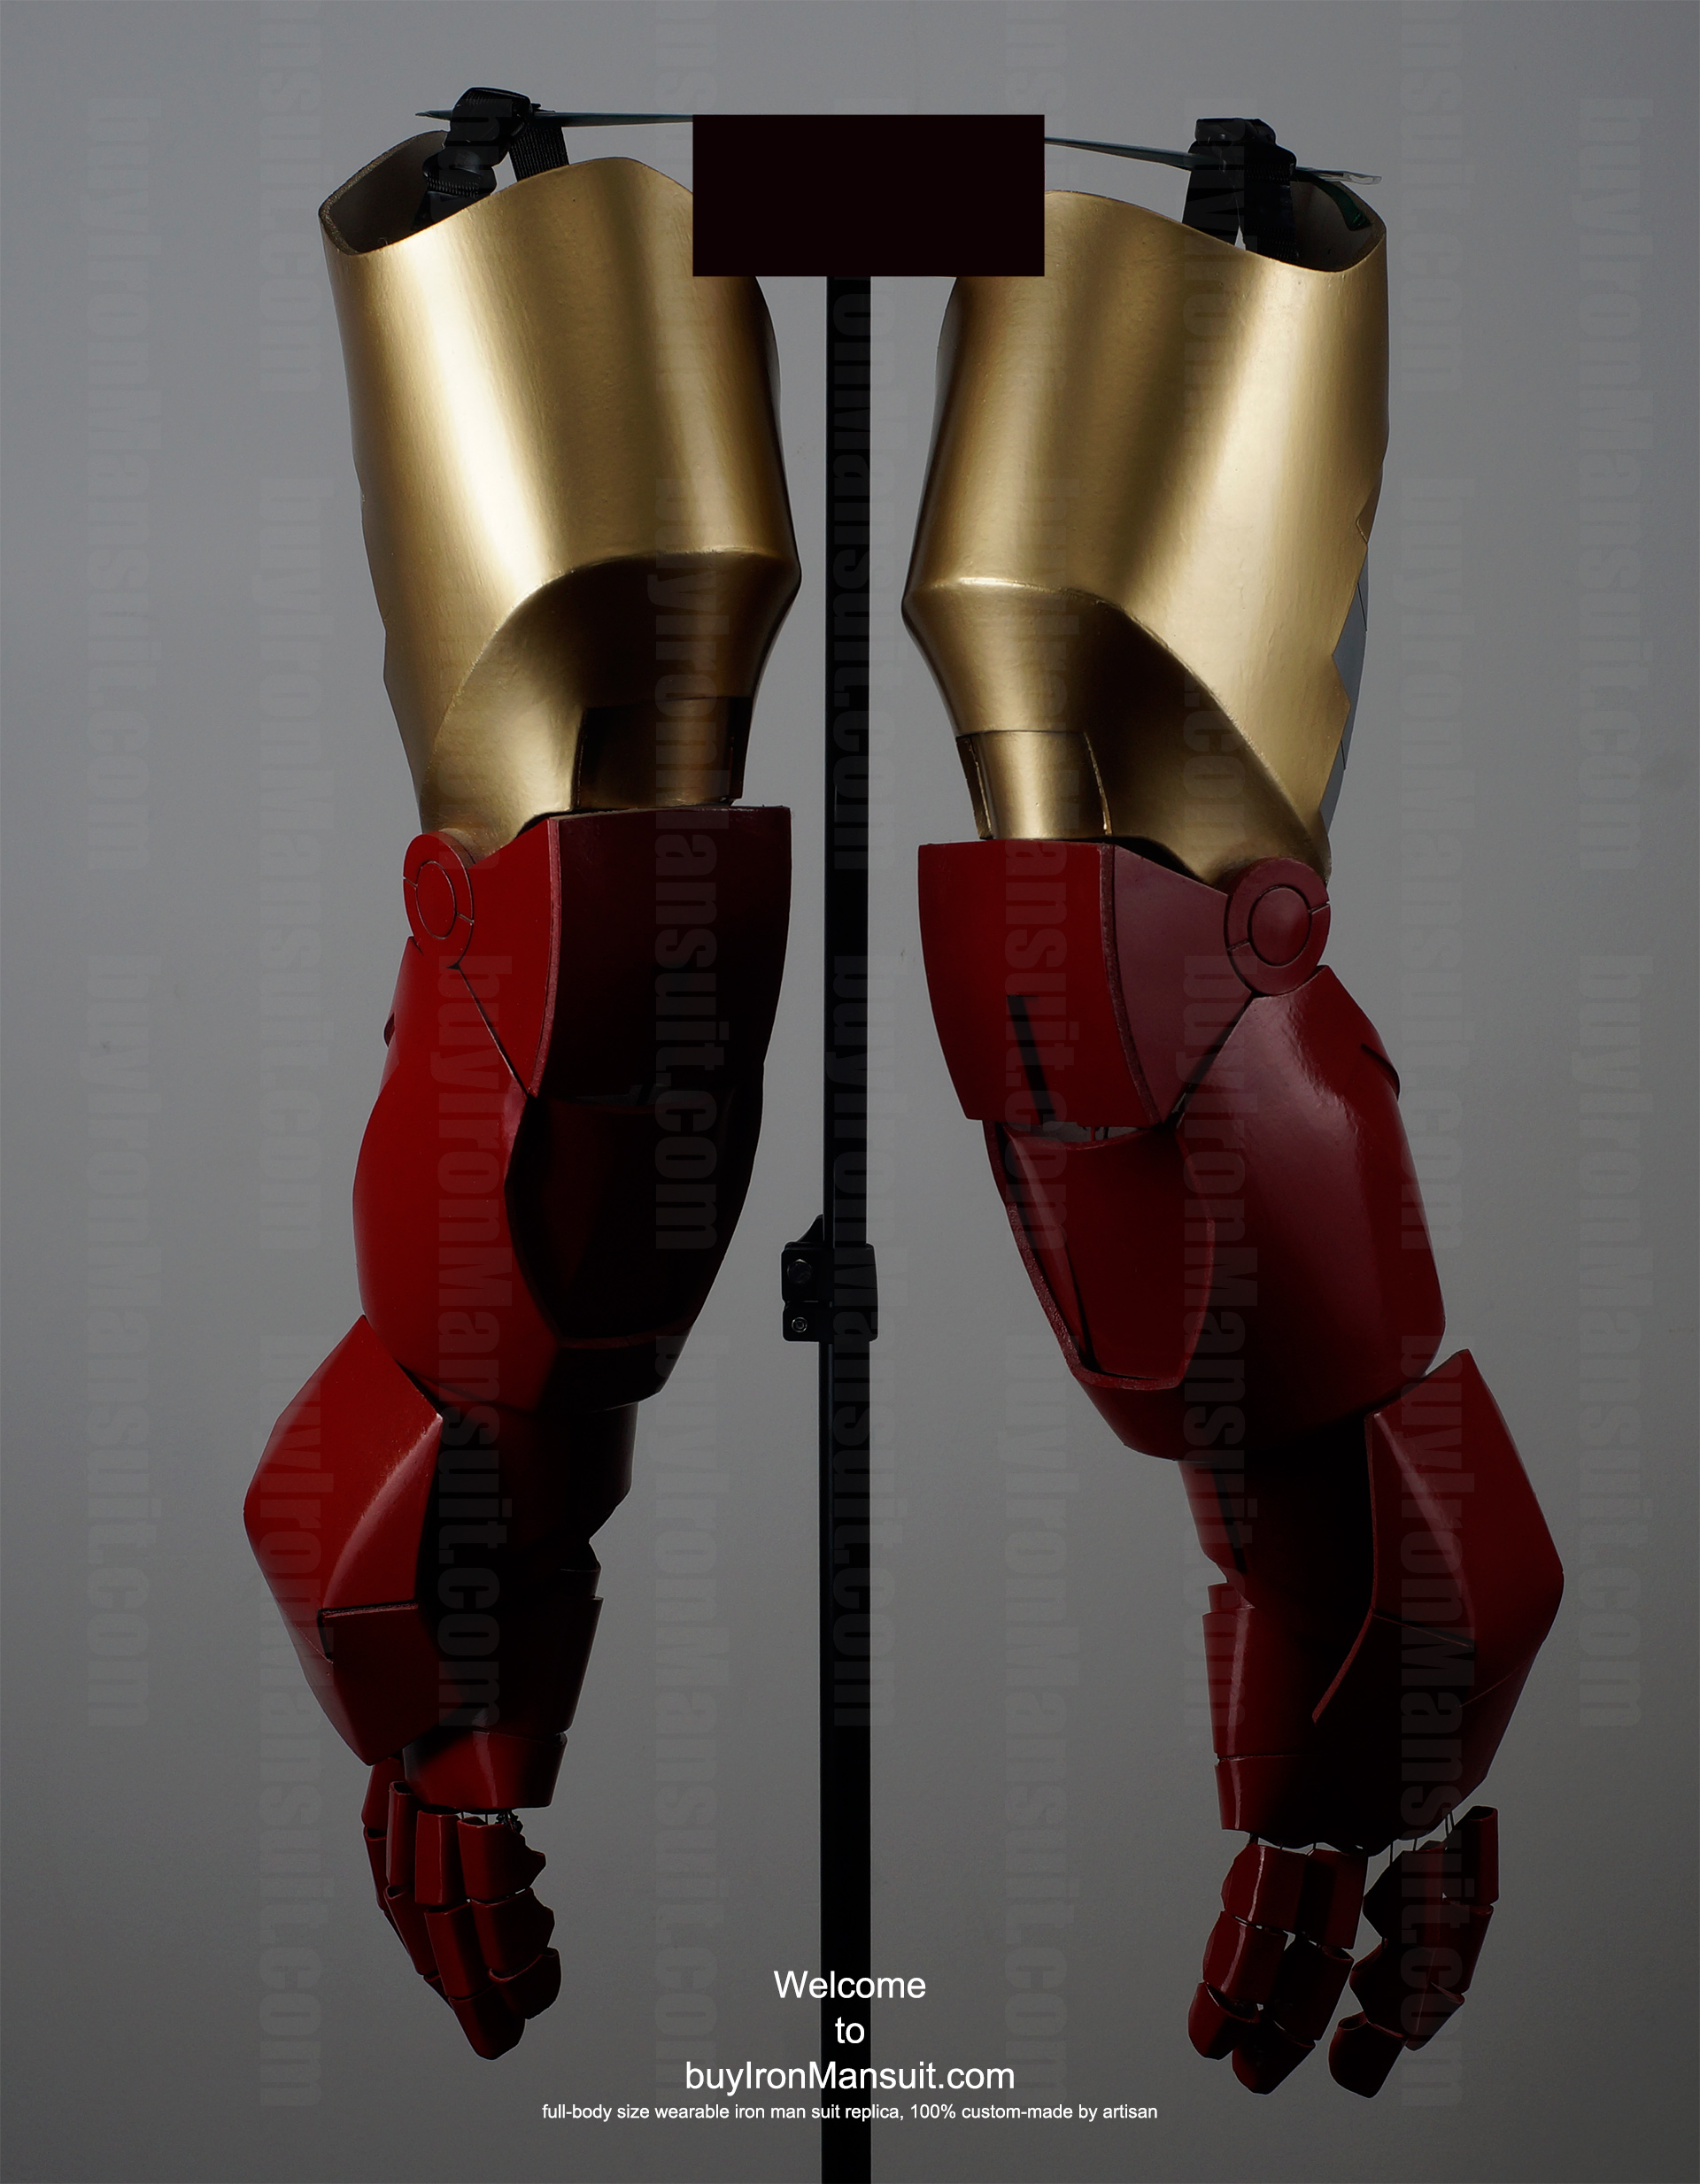 Buy Iron Man Suit Replica Iron Man Suit Arm Hand